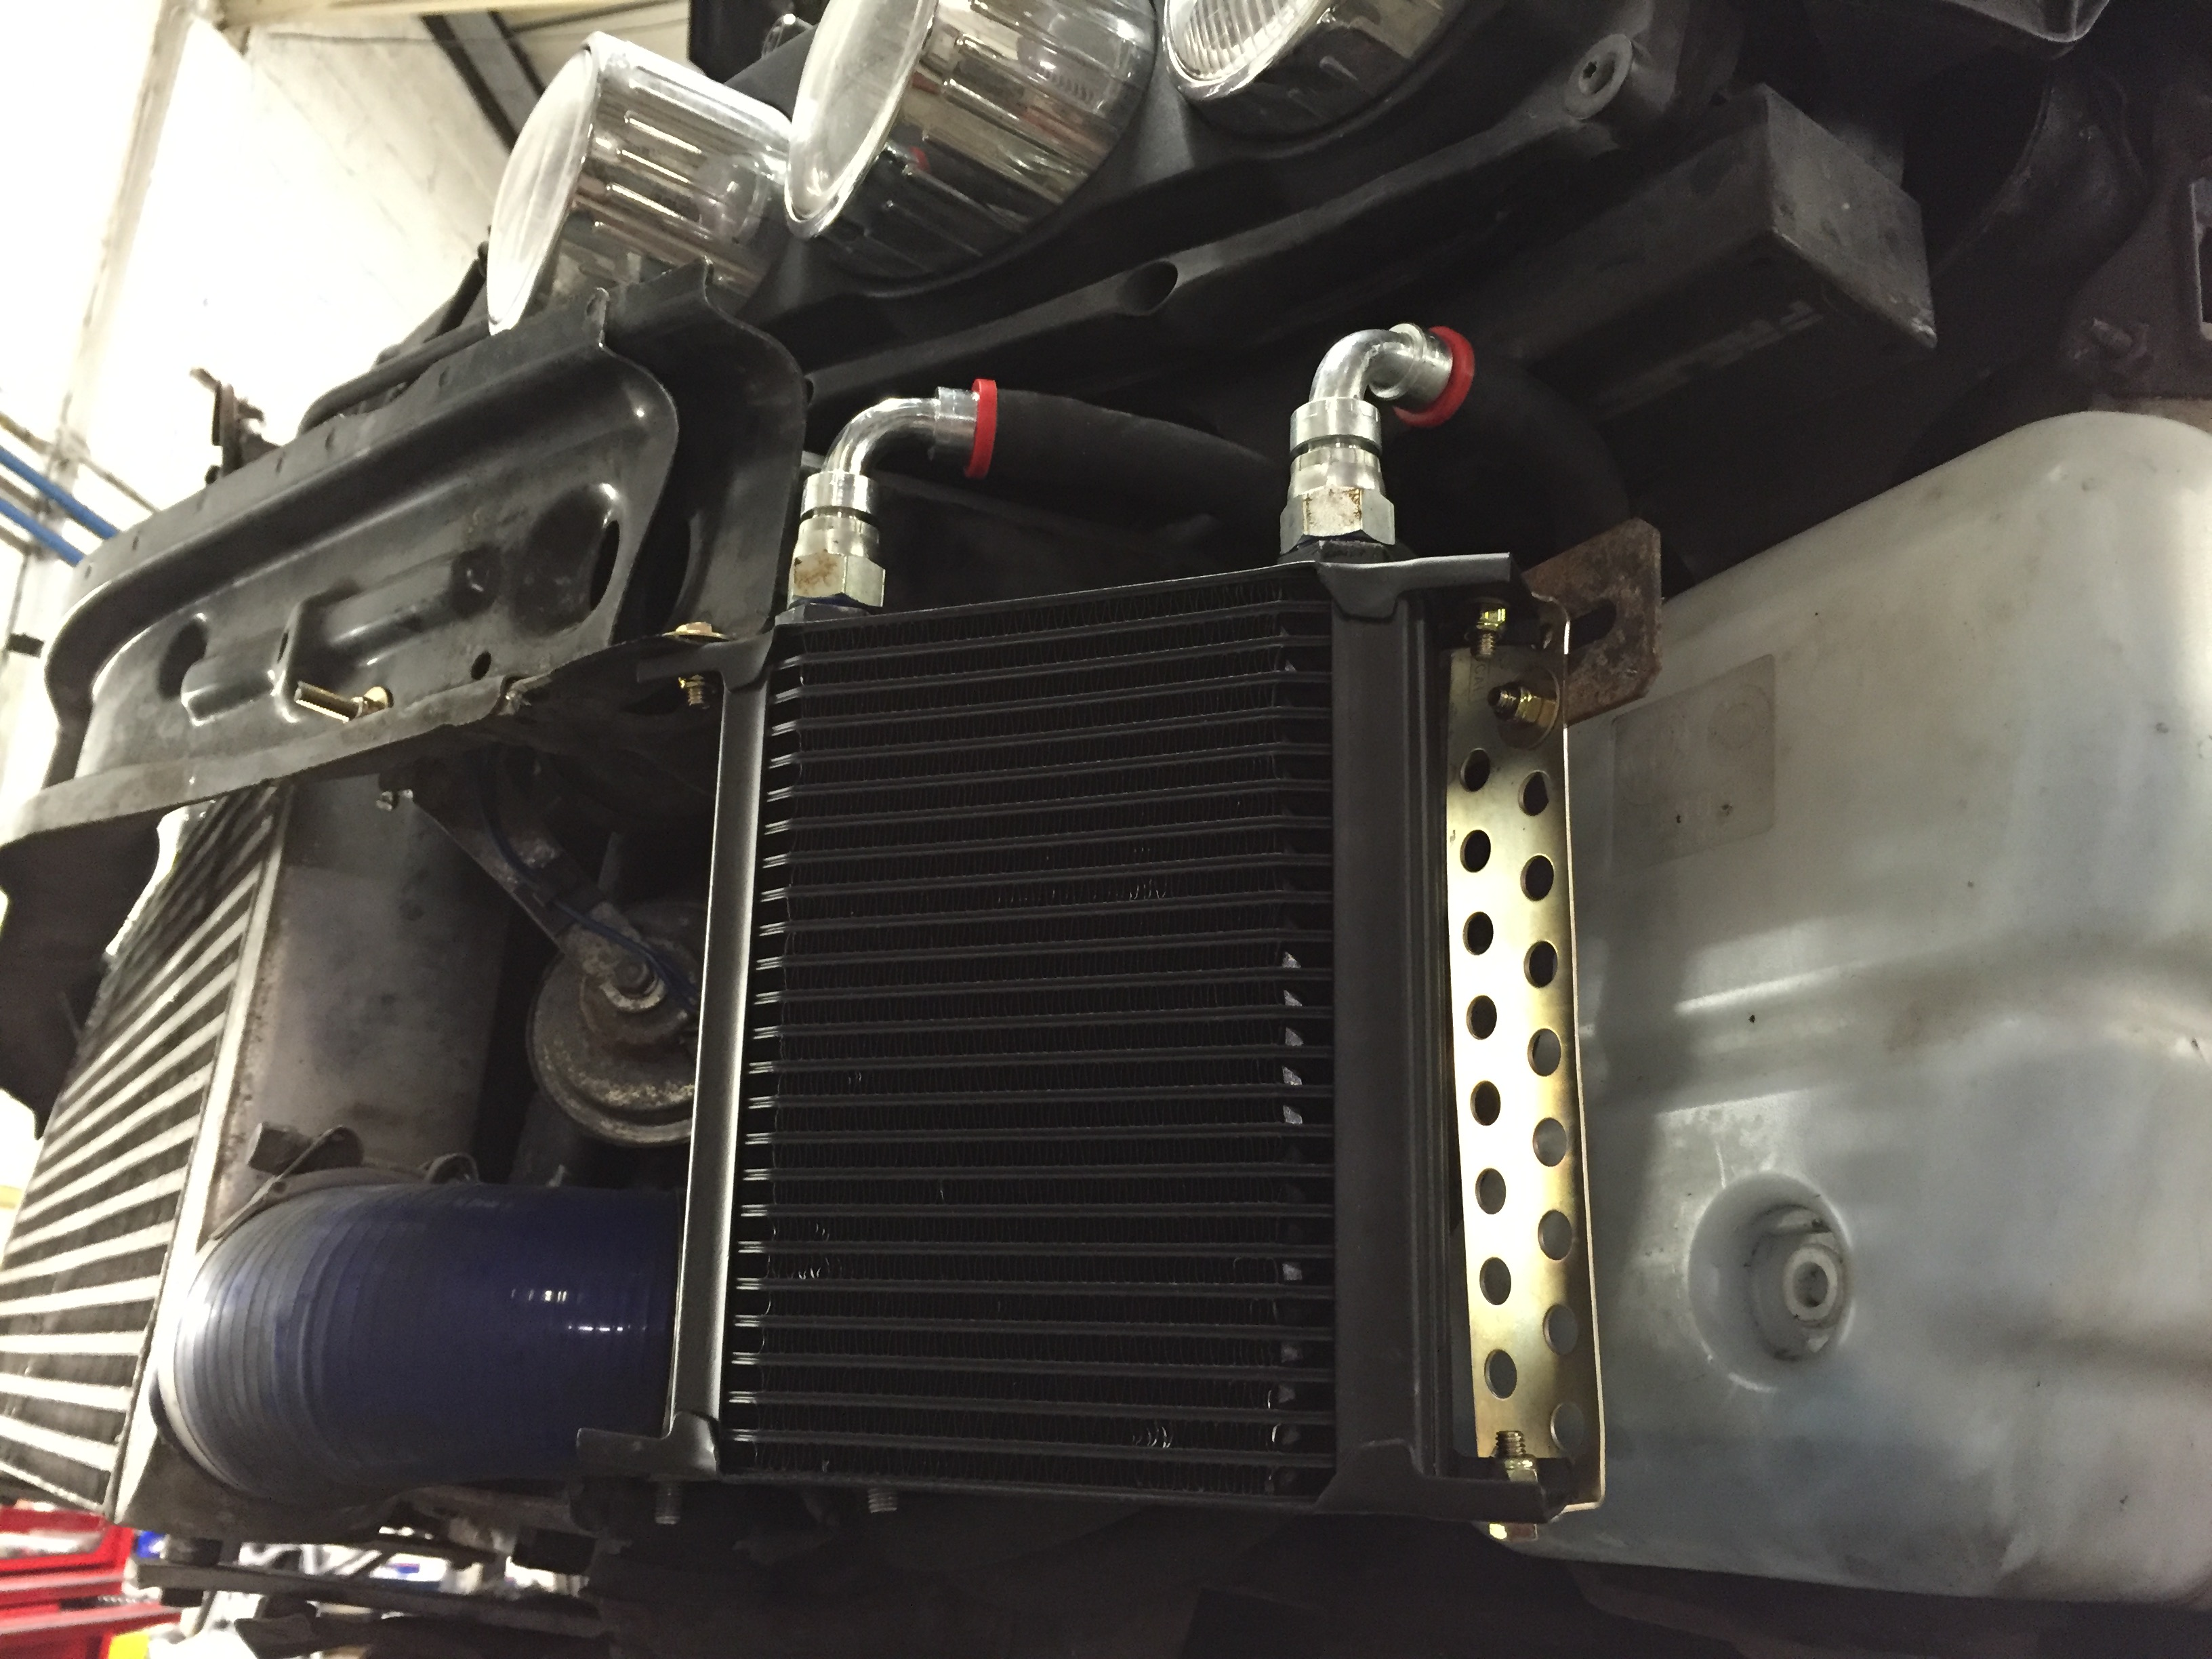 Alfa 159 Gearbox Cooler Modification - Jabawok Industries